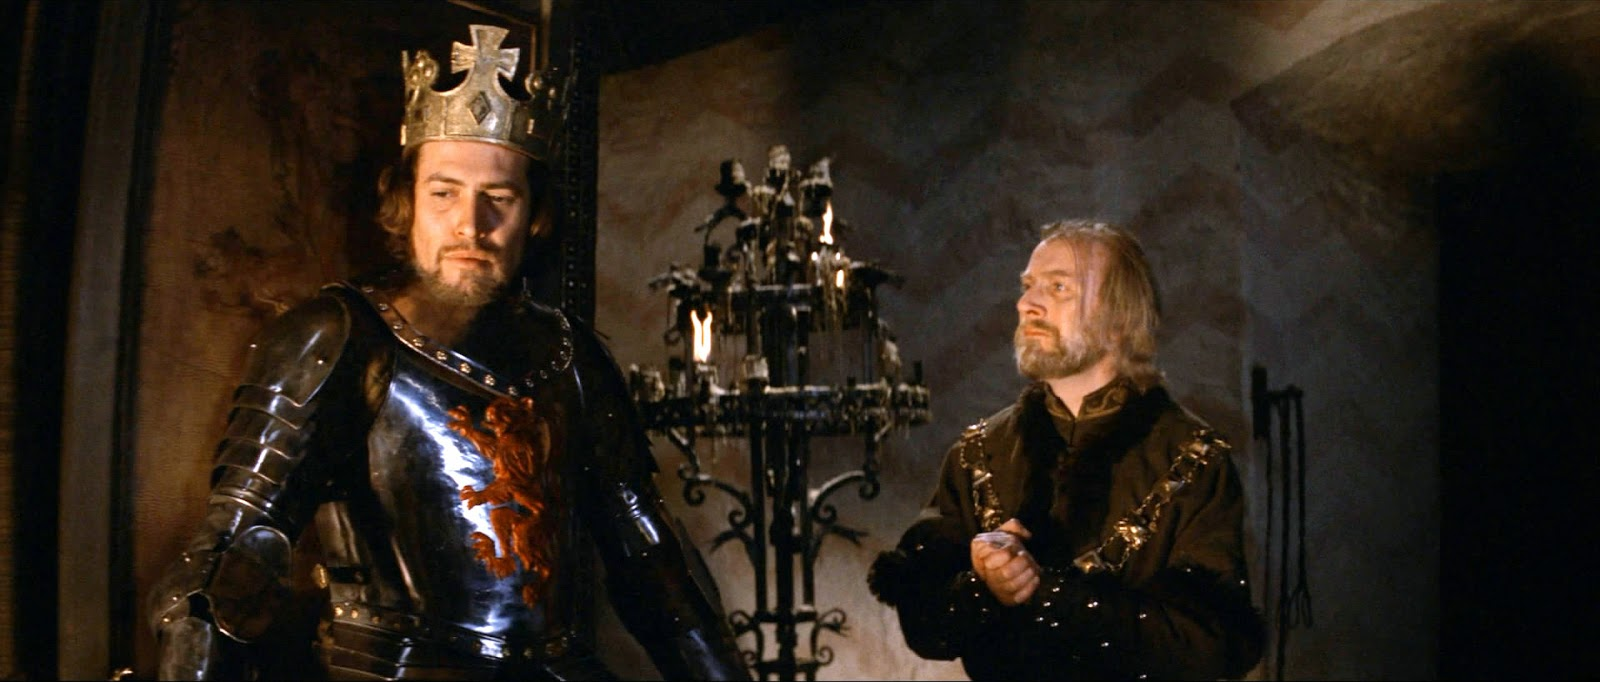 macbeth justification In the shakespearean short play, macbeth, the titular character is depicted as a character twisted by the fates and implicated in murder the reason being that king of scotland was just too big an opportunity to let pass.